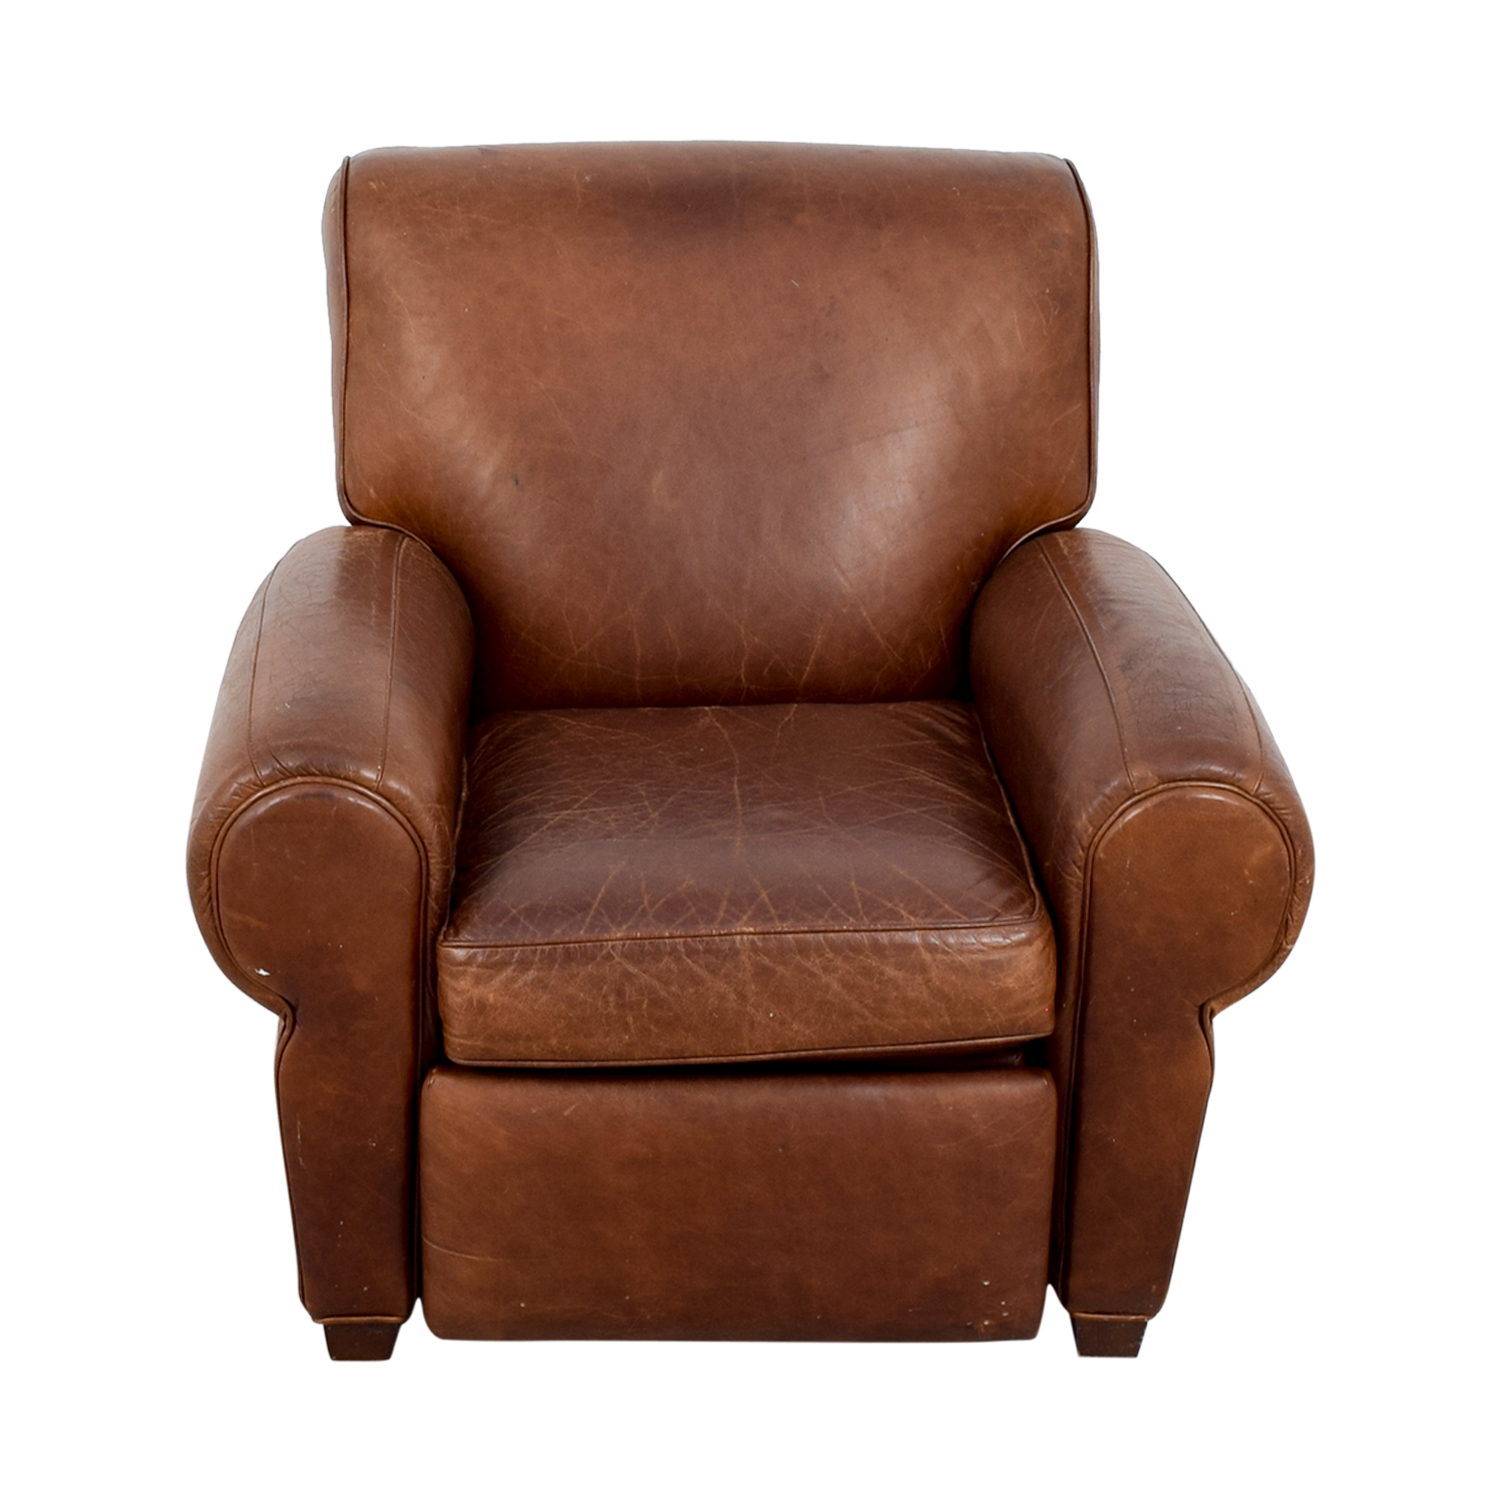 shop Pottery Barn Manhattan Brown Leather Club Chair Pottery Barn Recliners